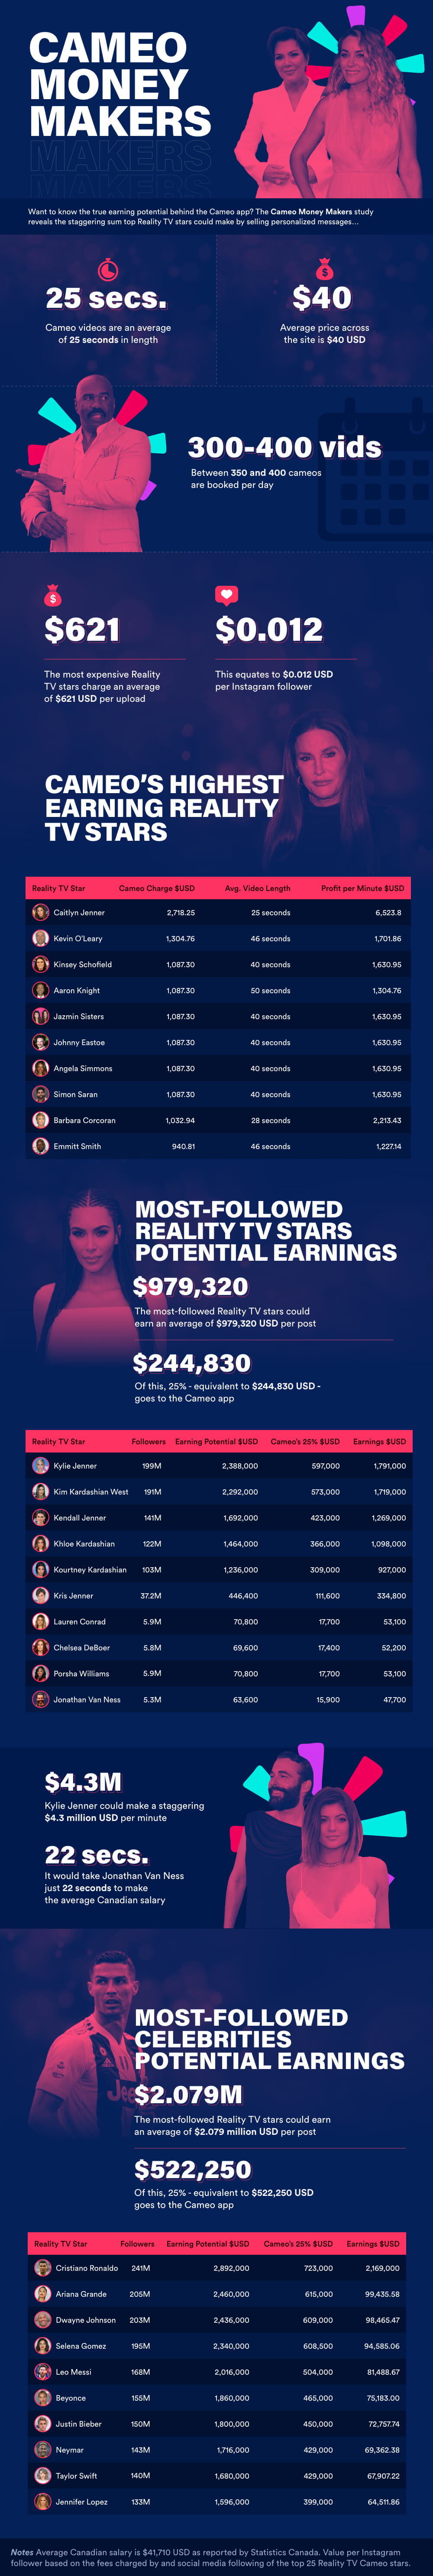 Cameo money makers infographic